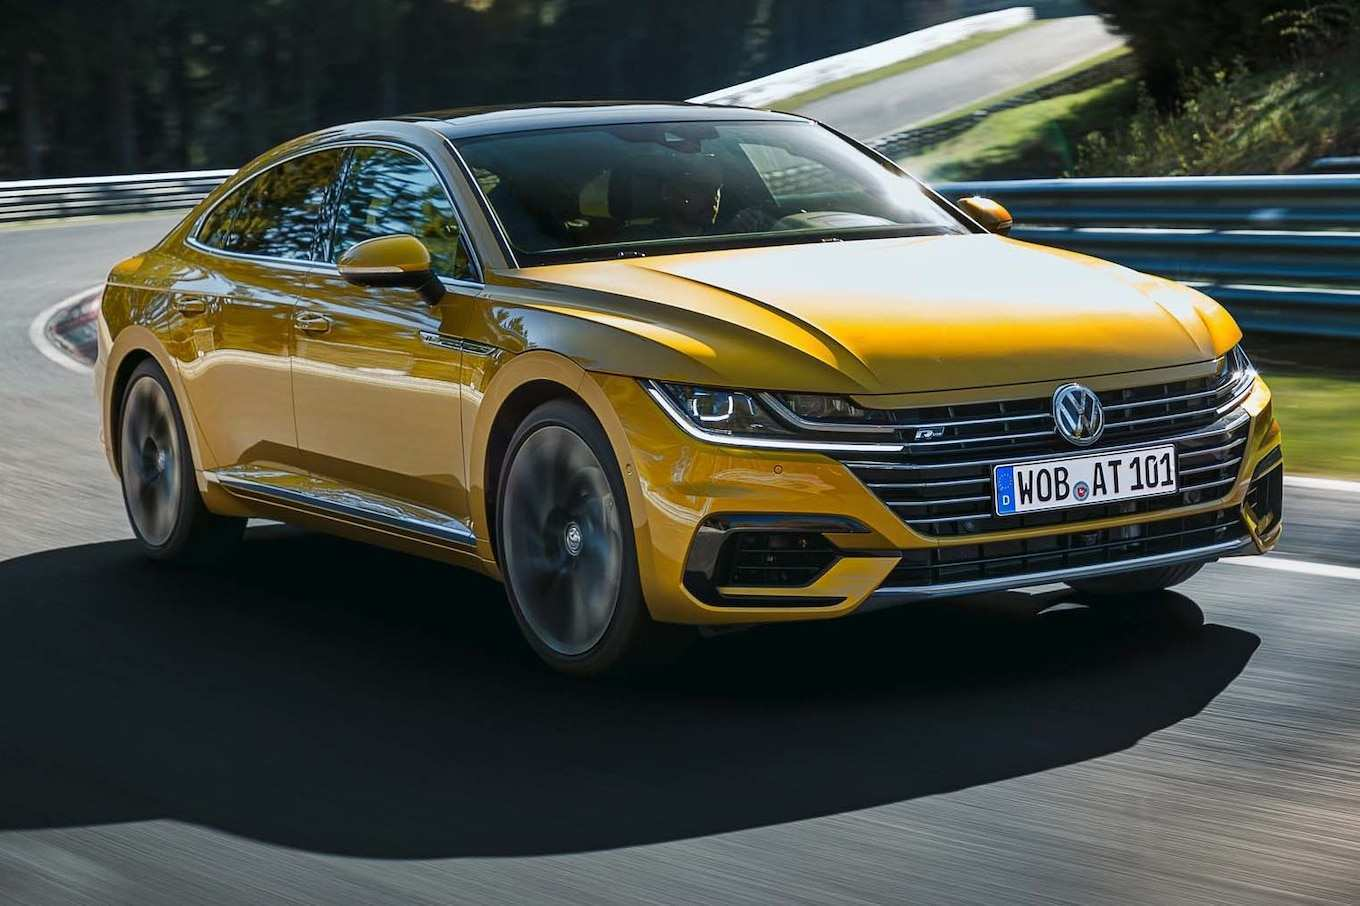 27 Best Review 2019 Vw Arteon History for 2019 Vw Arteon